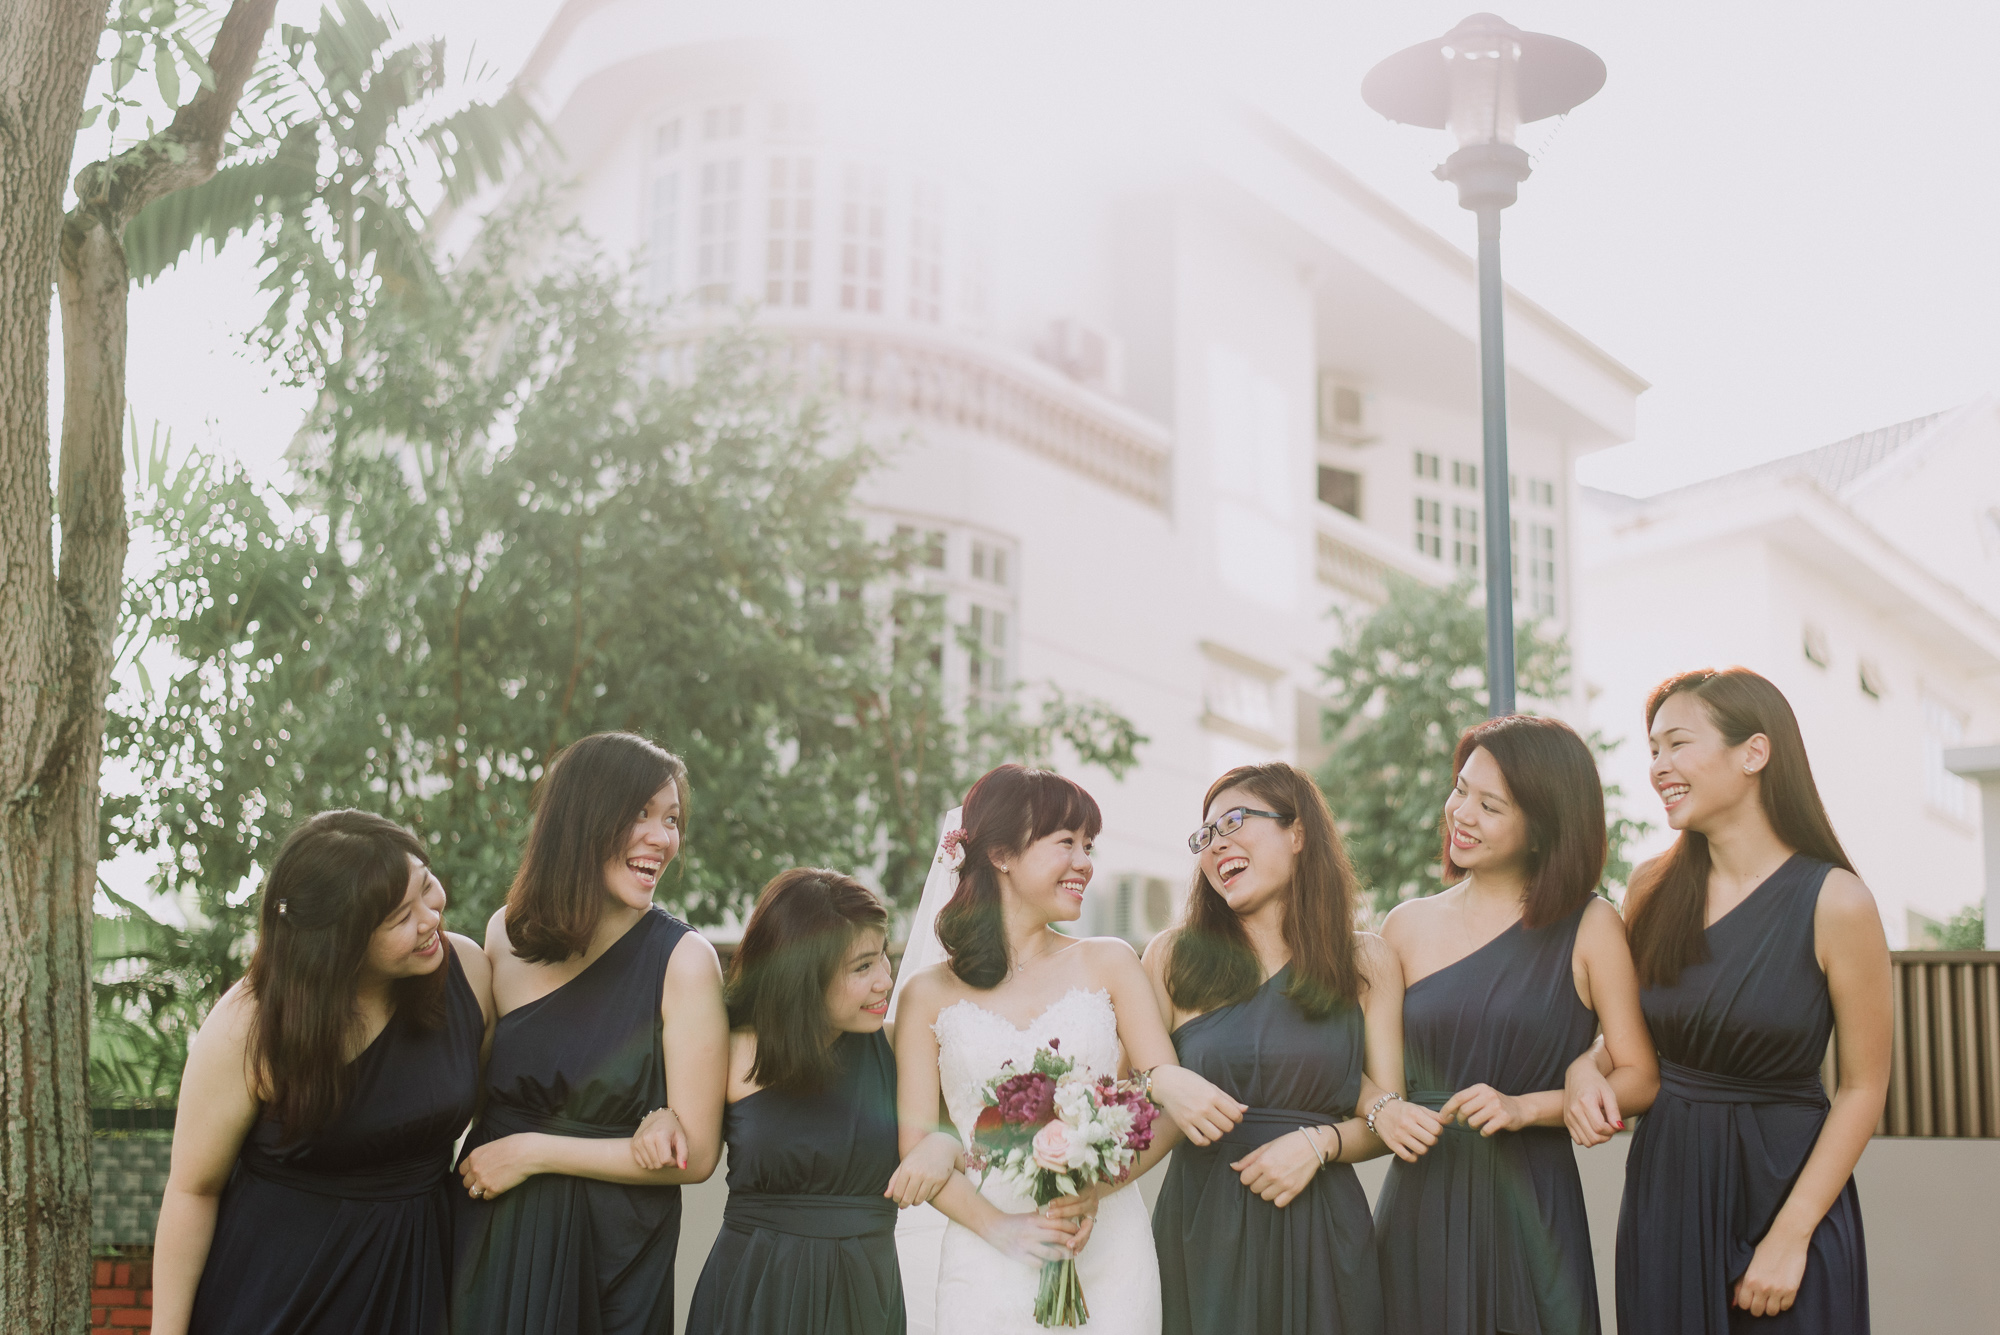 Singapore-wedding-photography-zion-presbyterian-60